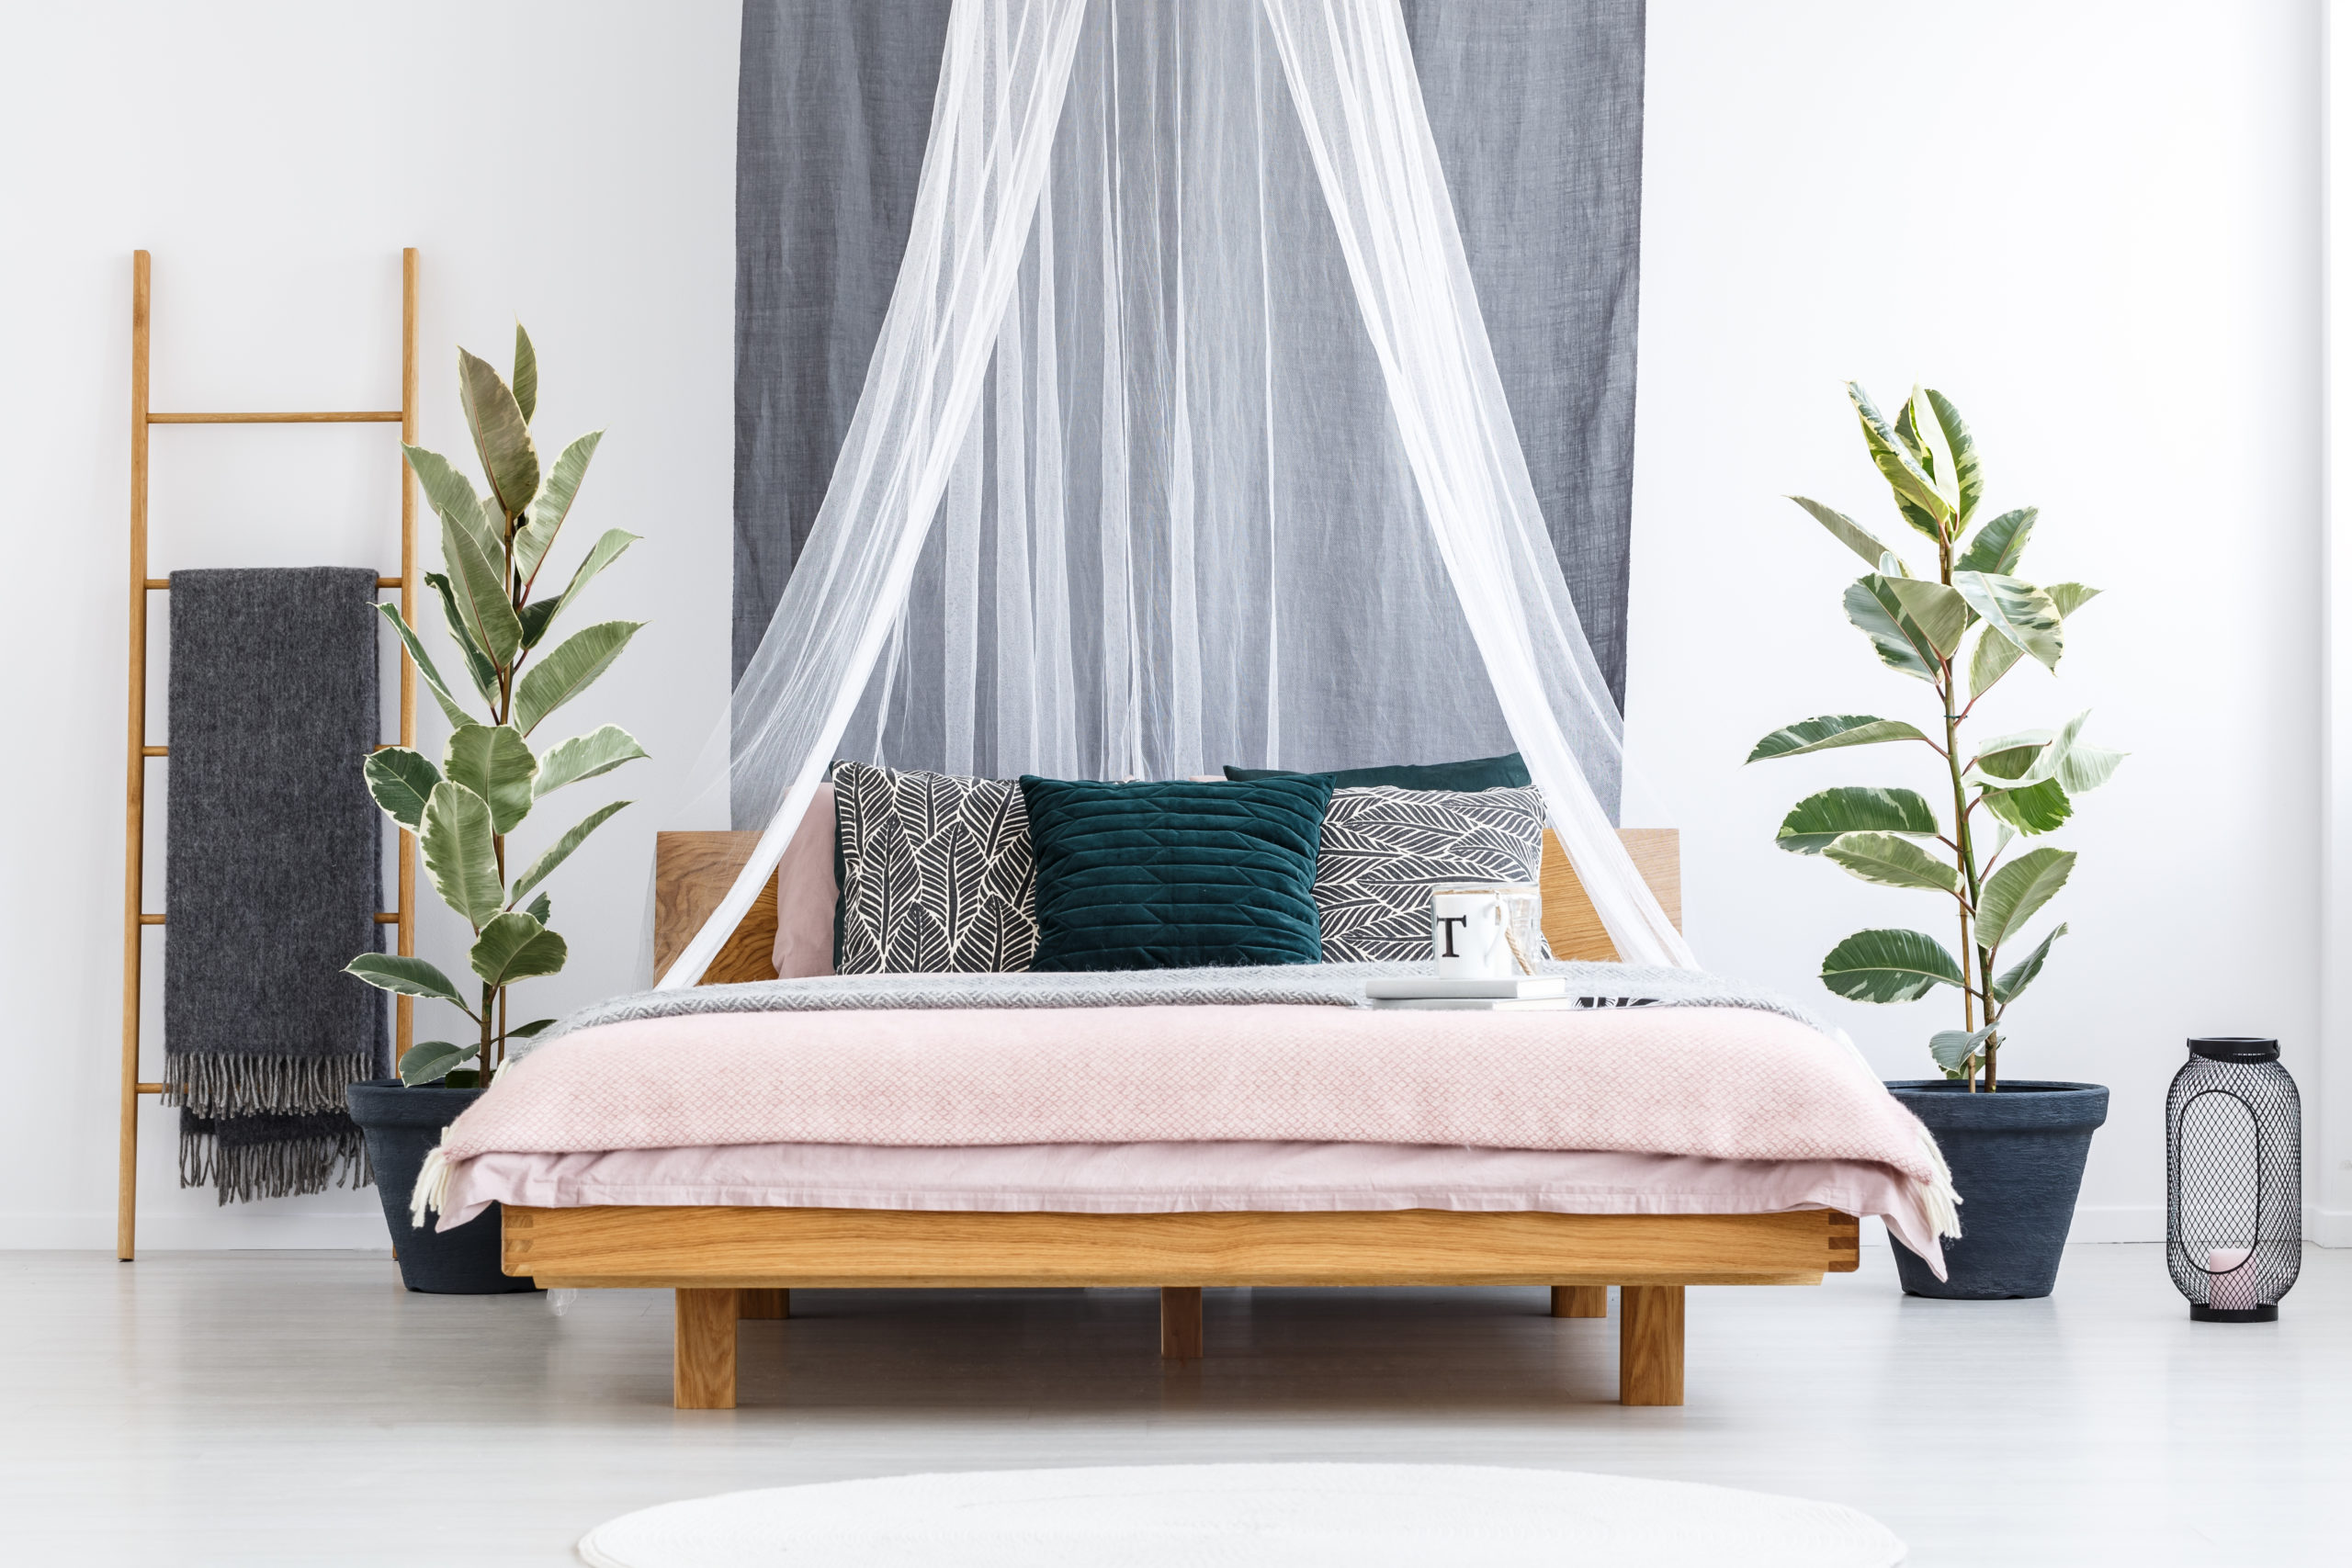 wooden bed with white canopy